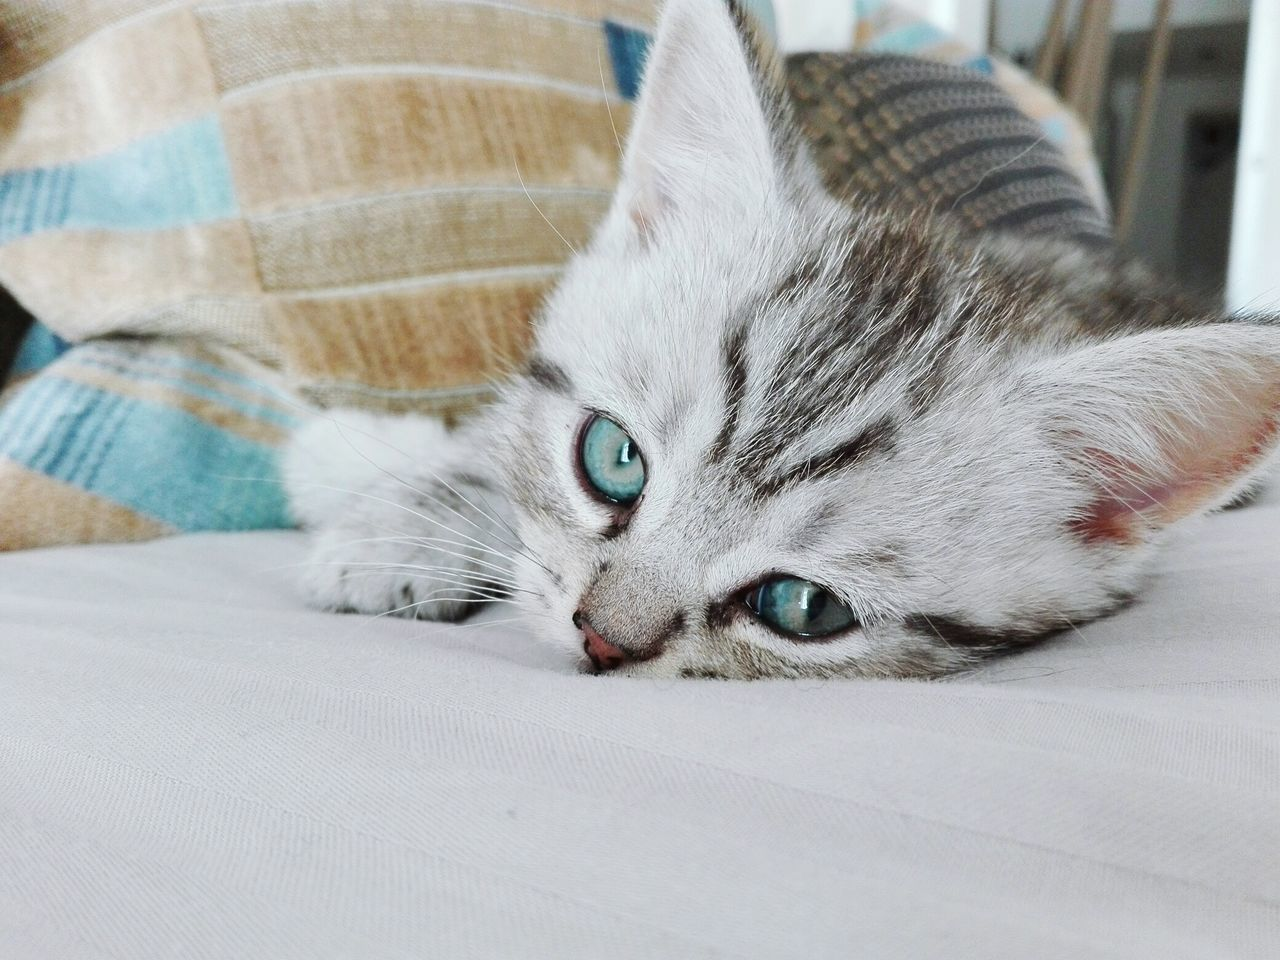 Bellissimo :-) EyeEm Eyem Gallery Eyeem Photography Eyeem Market Puppy Power Animals Kitten Adorable Kittensofinstagram Sweet♡ Lovely Puppy Love ❤ Kitten Love Kitten 🐱 Cats 🐱 Showcase July